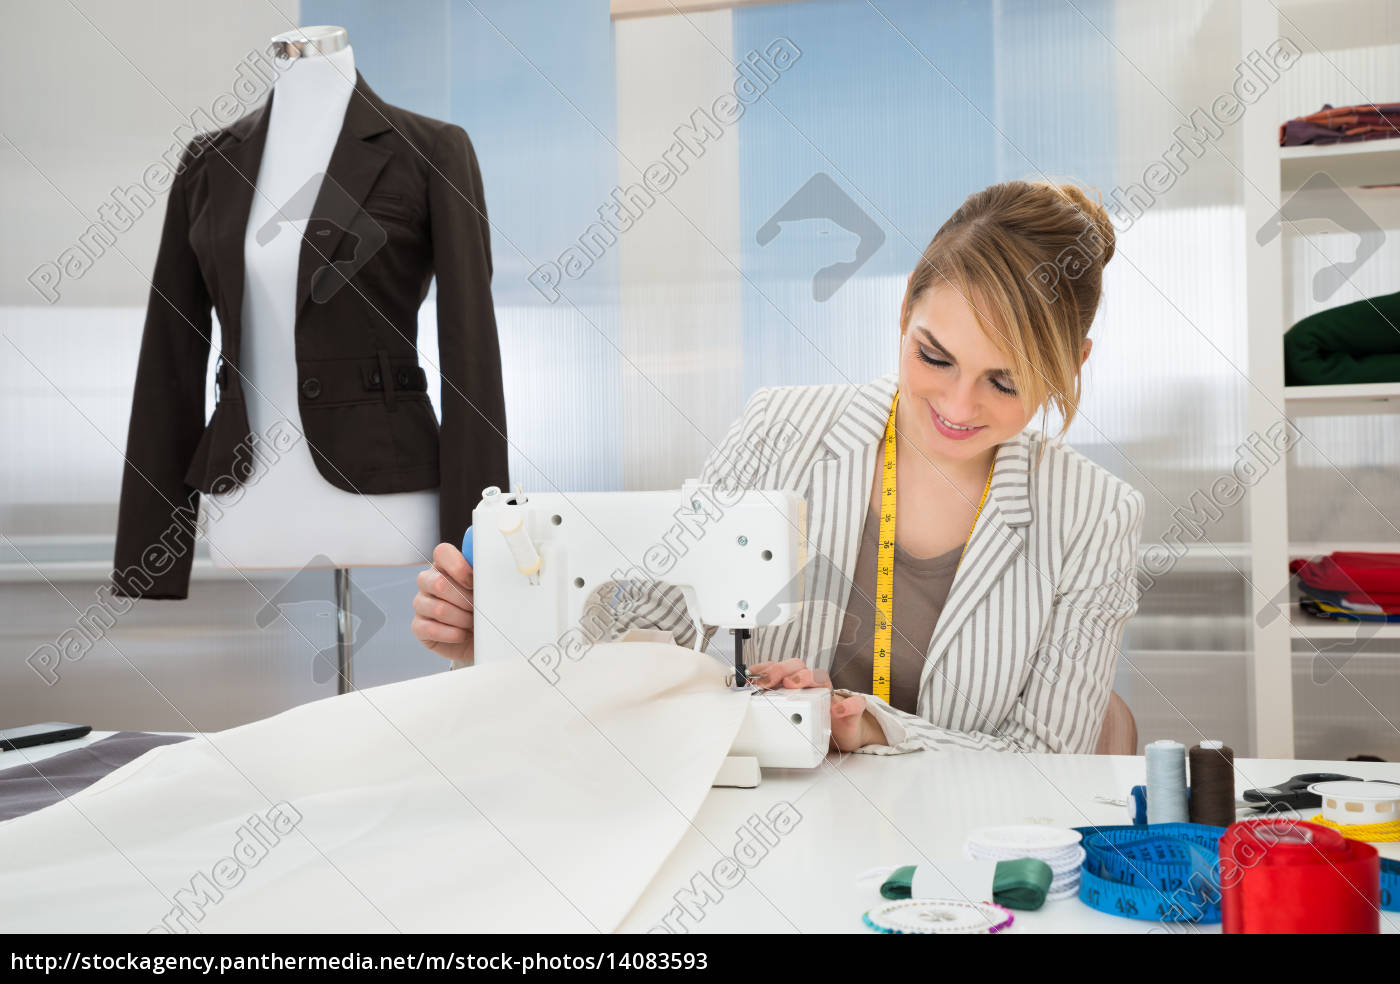 woman, working, on, sewing, machine - 14083593